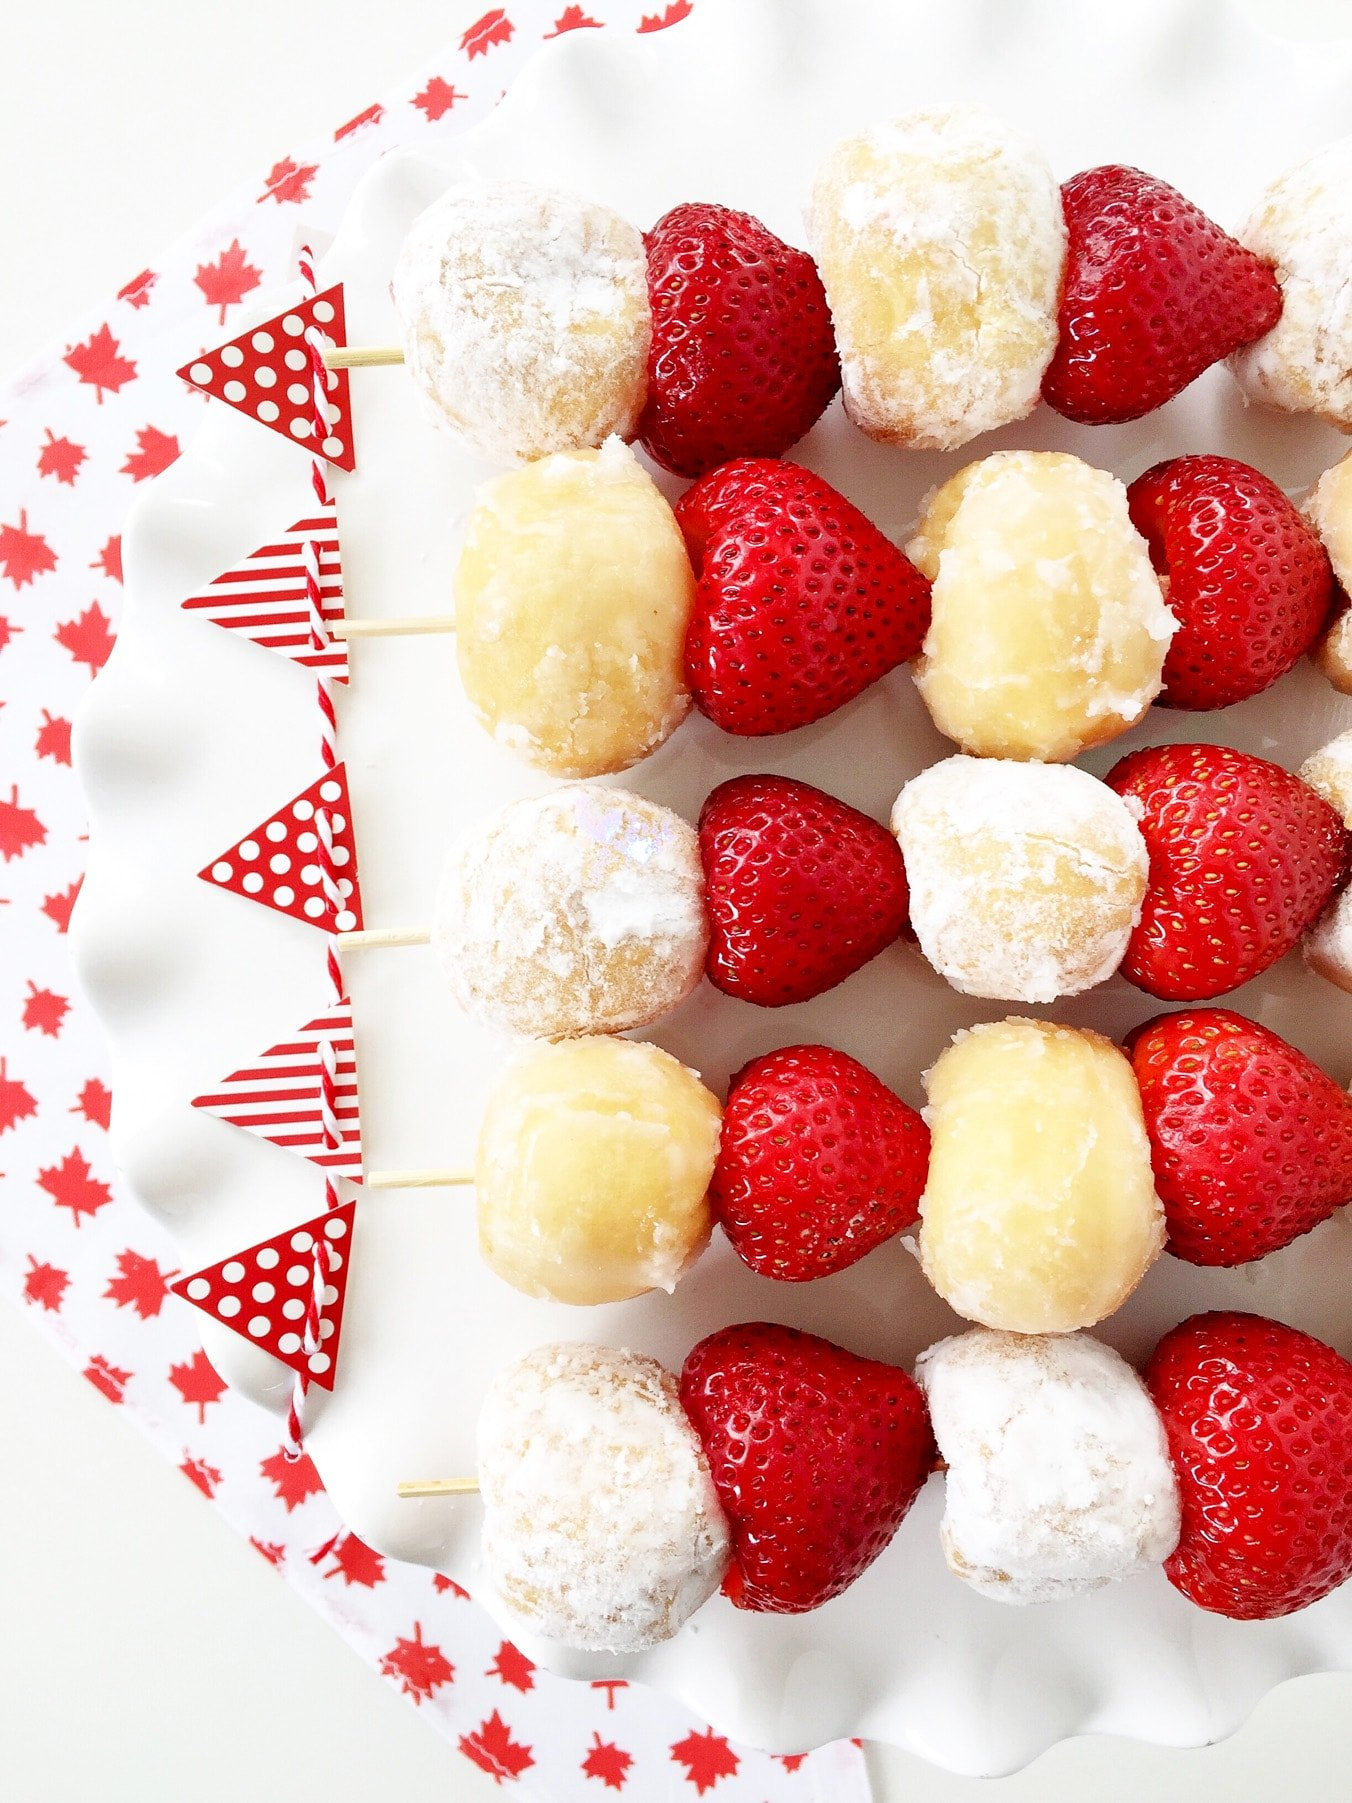 Canada Day Party: 5 Minute Dessert Kebabs